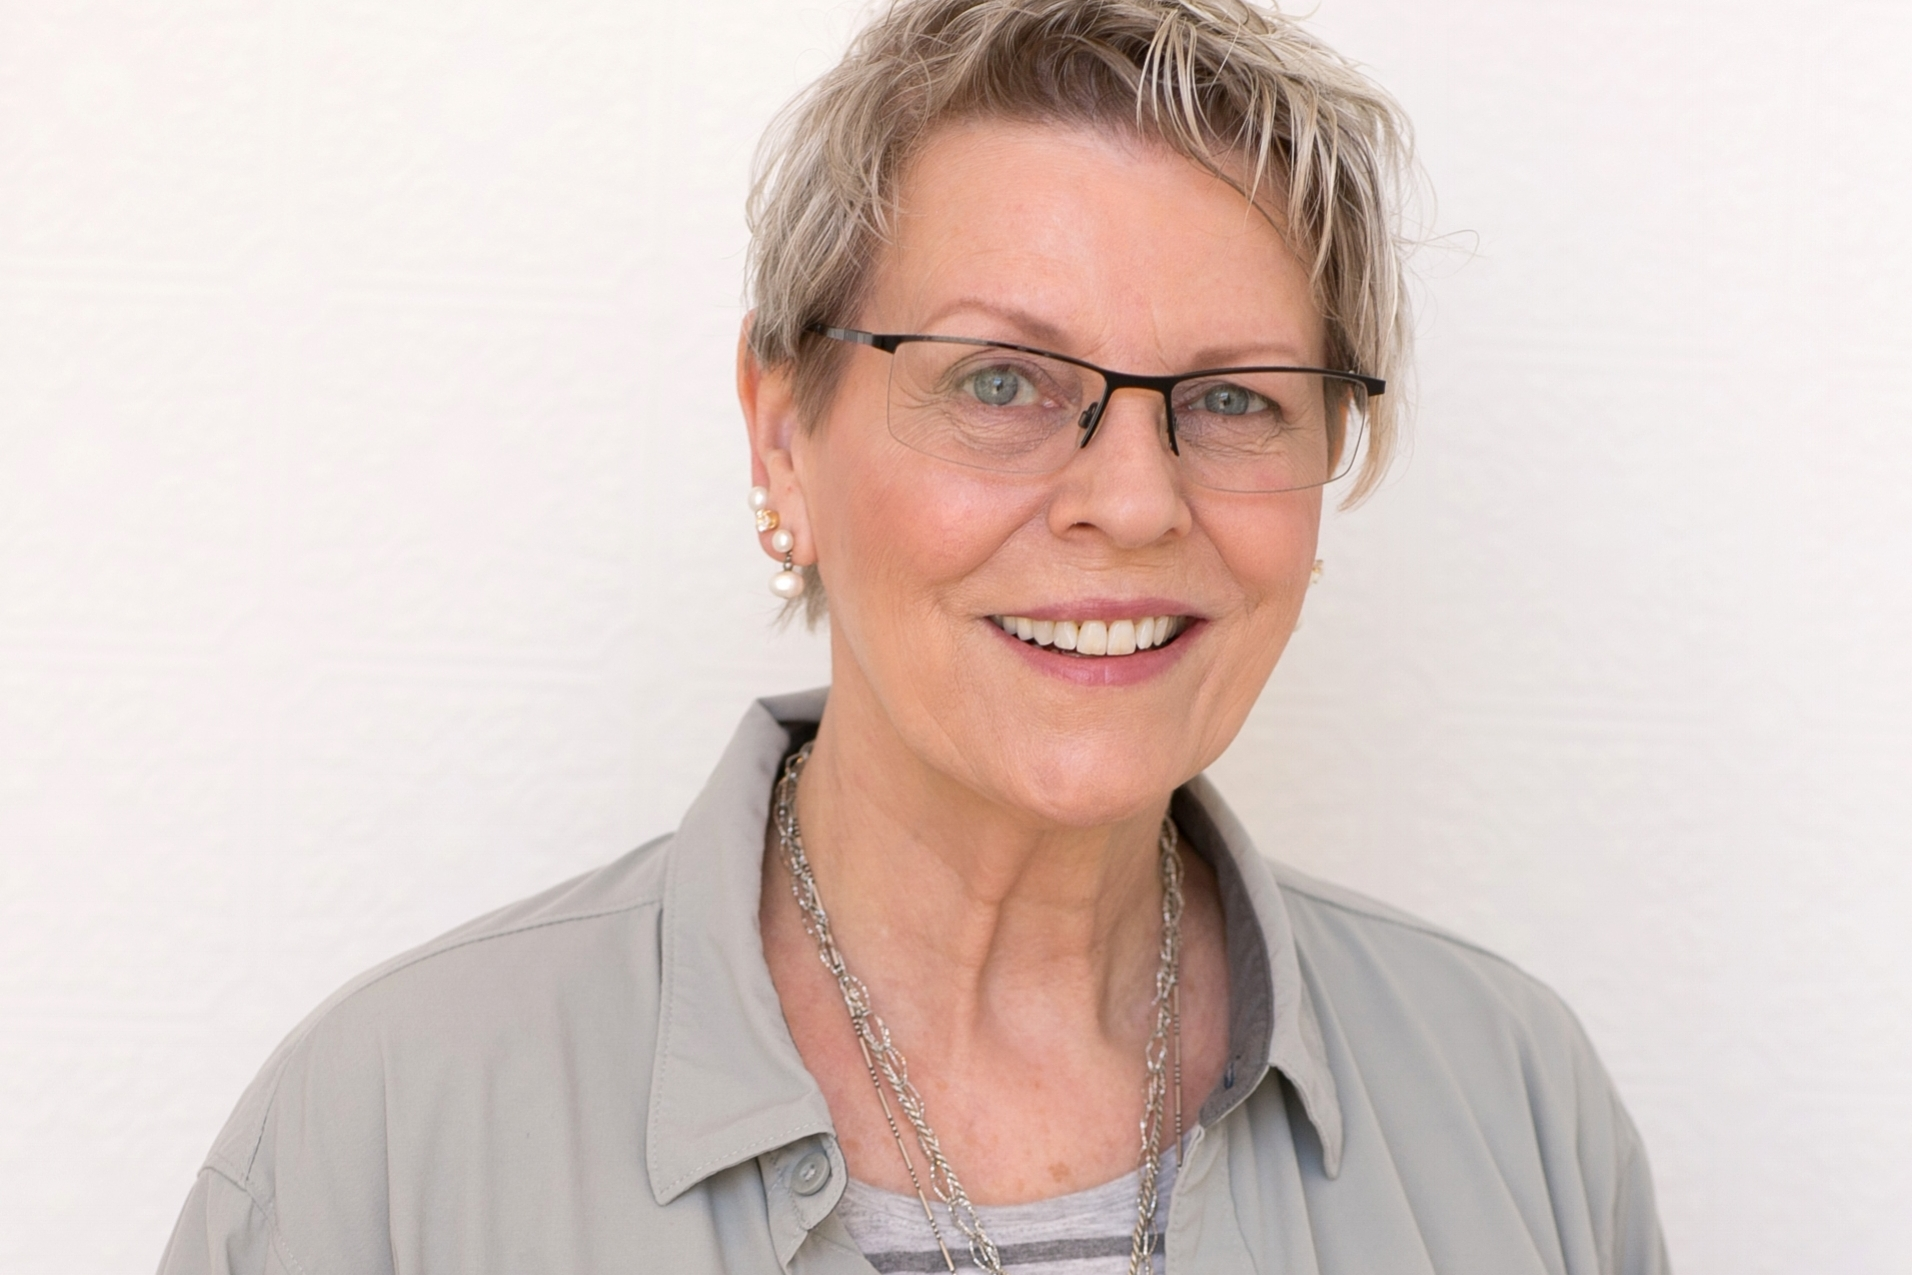 Laurie Hamilton - Co-Owner, Print AgentLaurie joined the agency in 1992. She studied fine art at the University of Vienna, Austria, Fashion Illustration at The Art Institute of Chicago, and received her BA in Advertising and Editorial Art at the University of Kansas. Specializing in print, Laurie works with her clients to cast the most talented actors and models in the Midwest. Since joining the agency, Laurie has shepherd the Children's Division from a department to a specialty. As a mother of twins who had their first job in a movie at six months old and daughter of